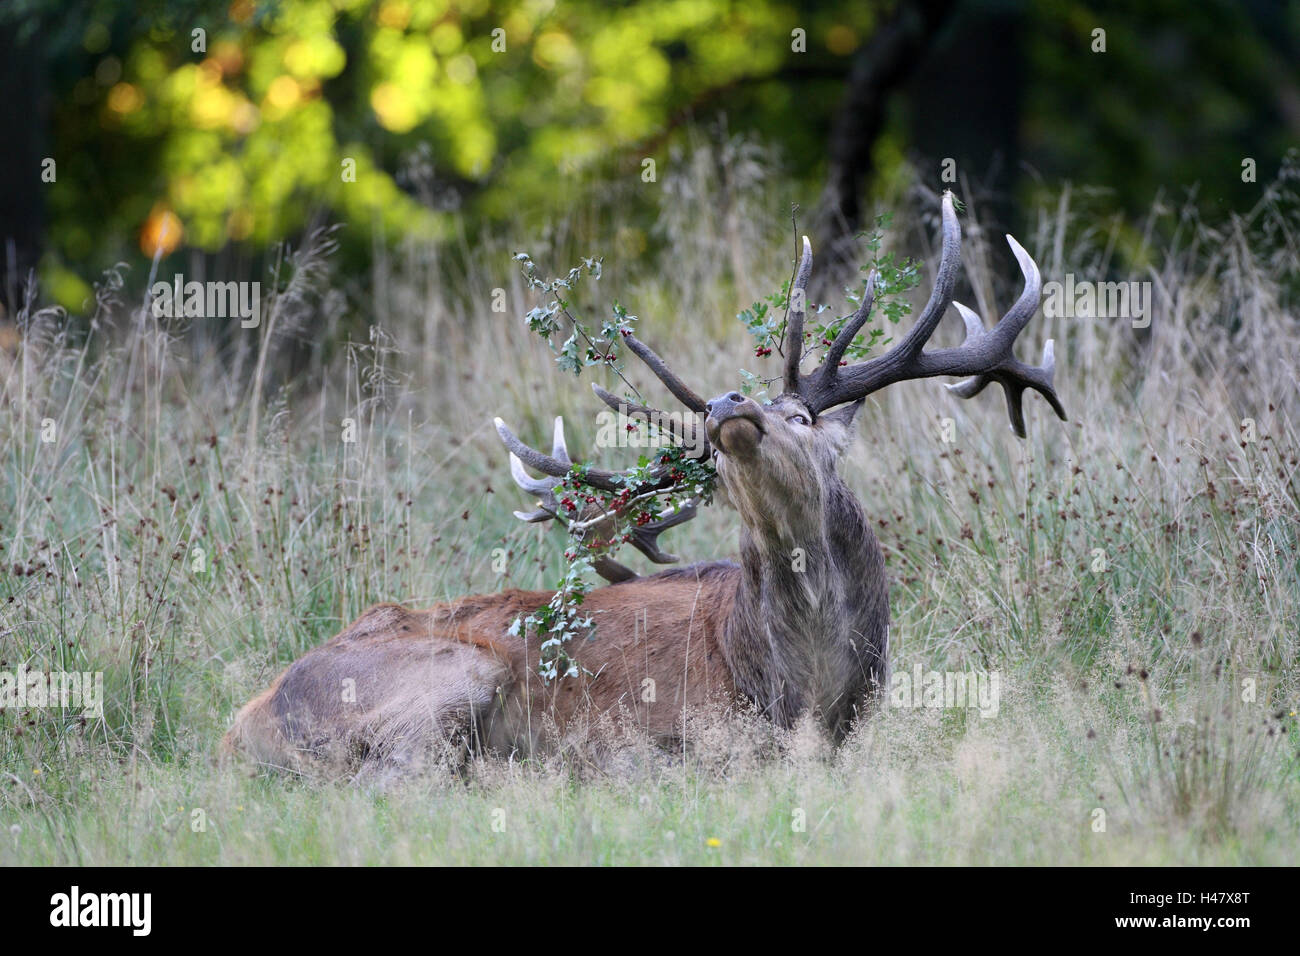 Red deer, grass, lie, antlers, branches, - Stock Image